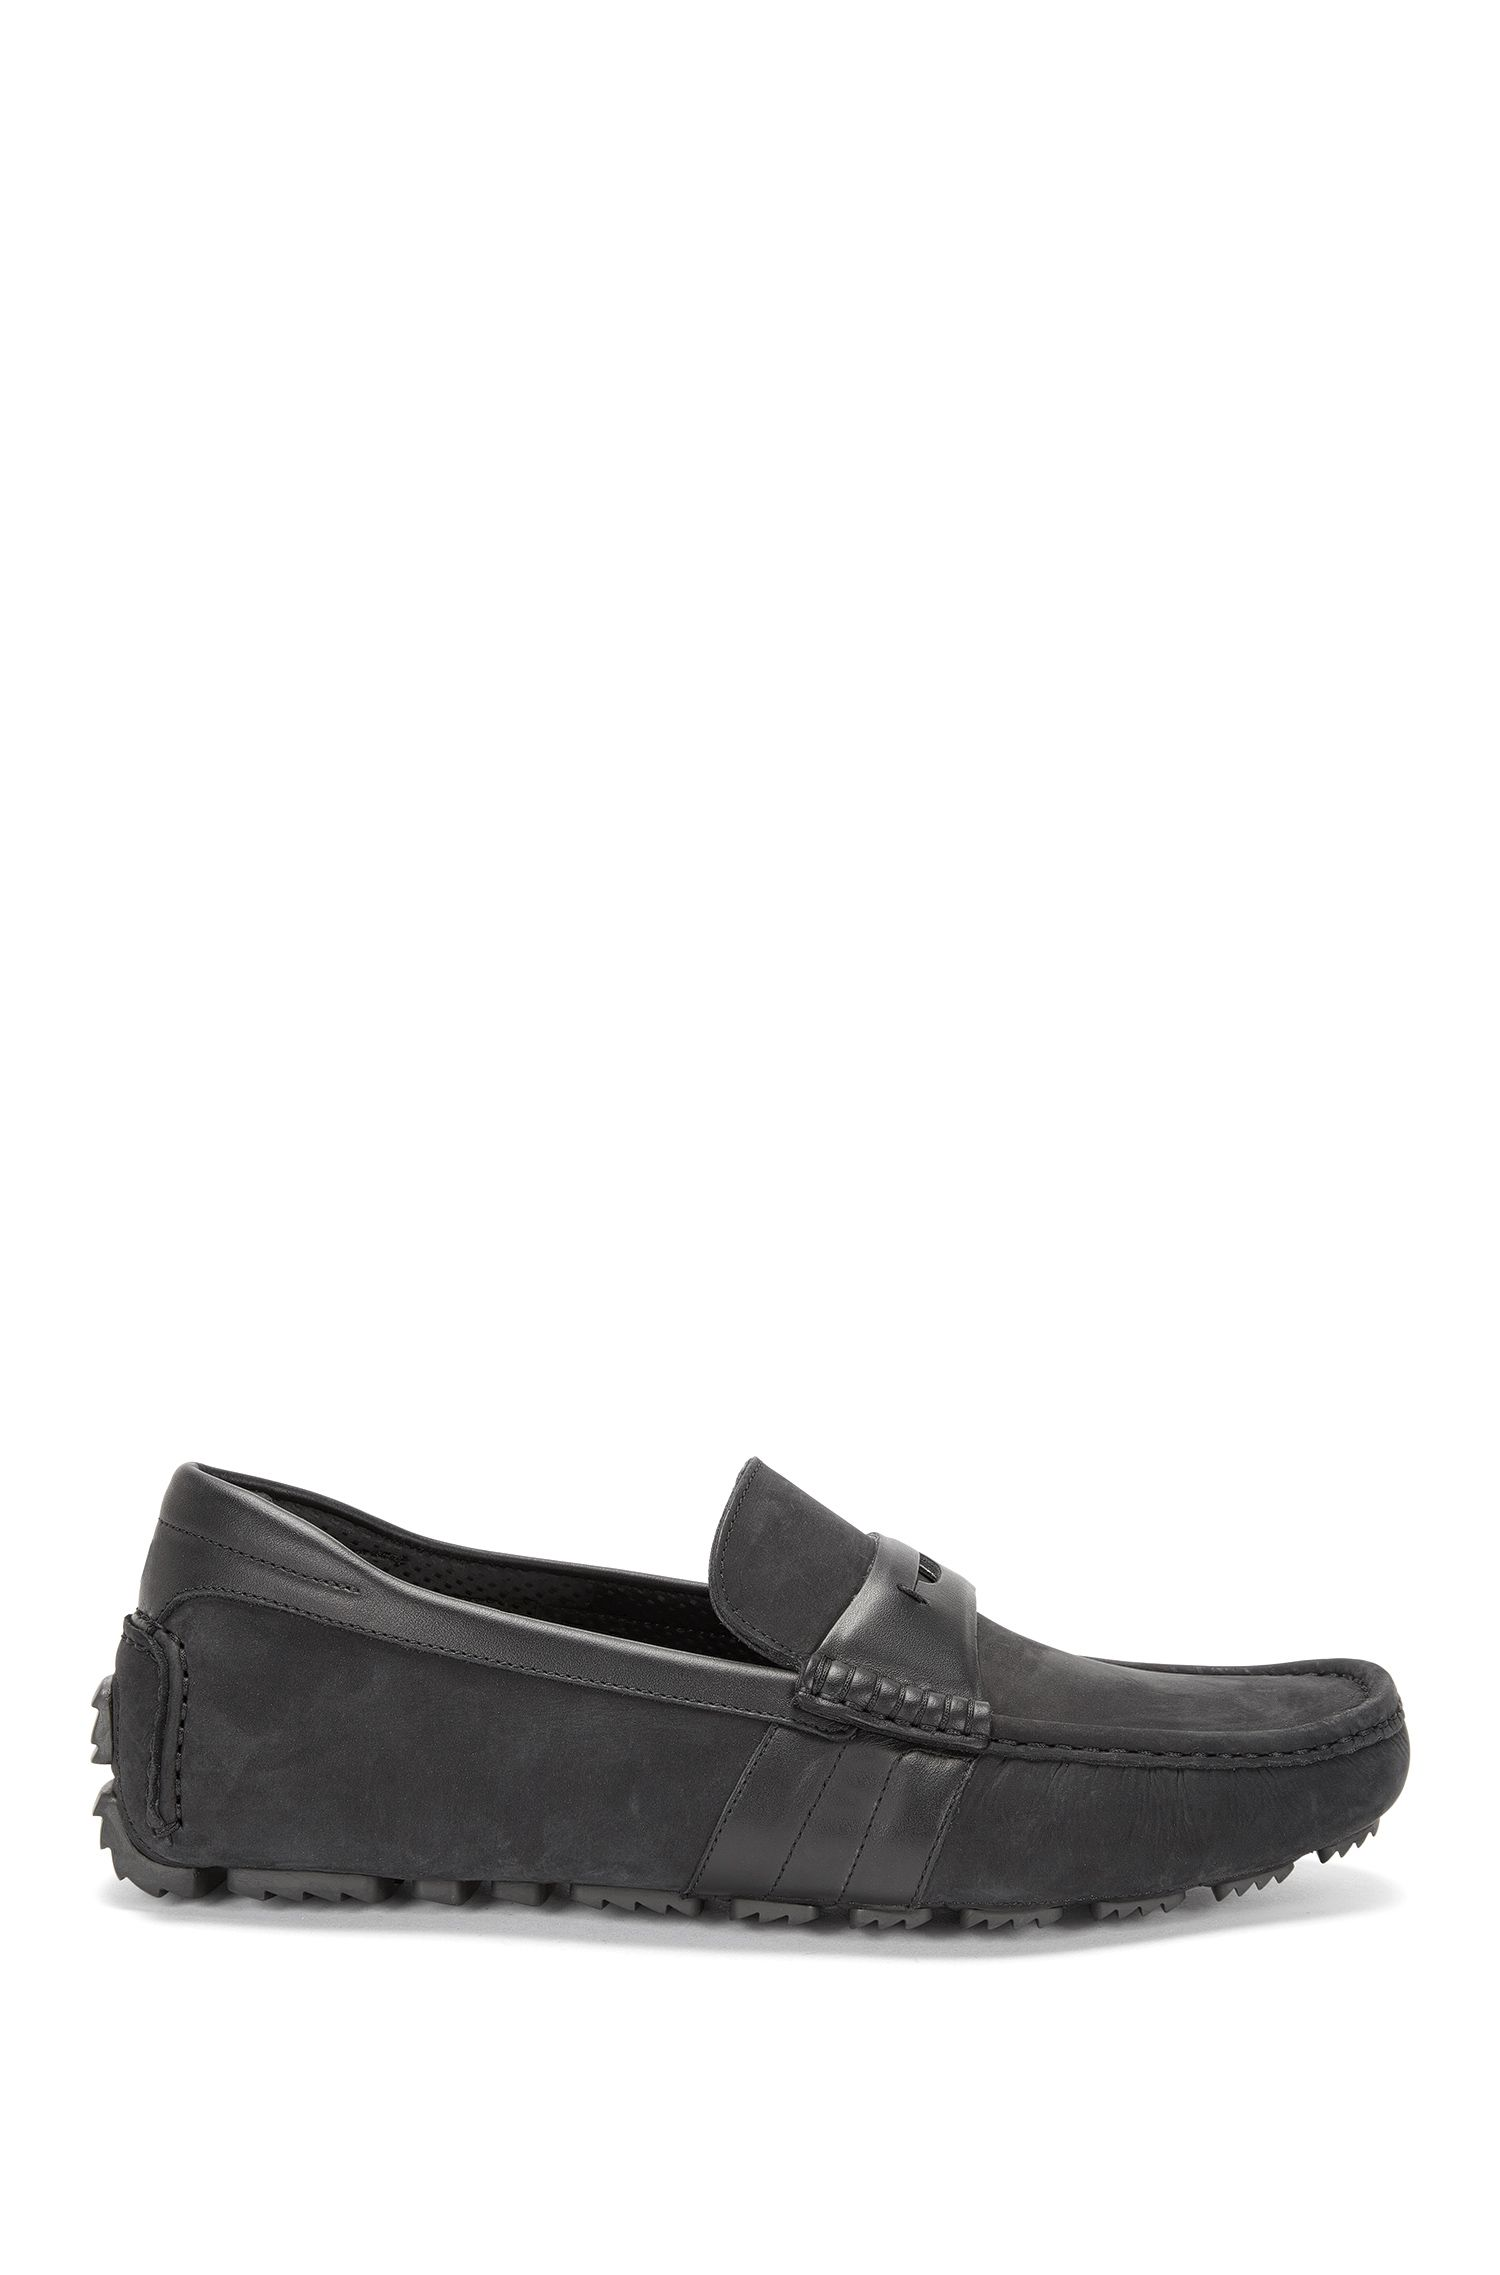 'Driver Mocc Nult' | Italian Suede Plain Leather Driving Moccasins